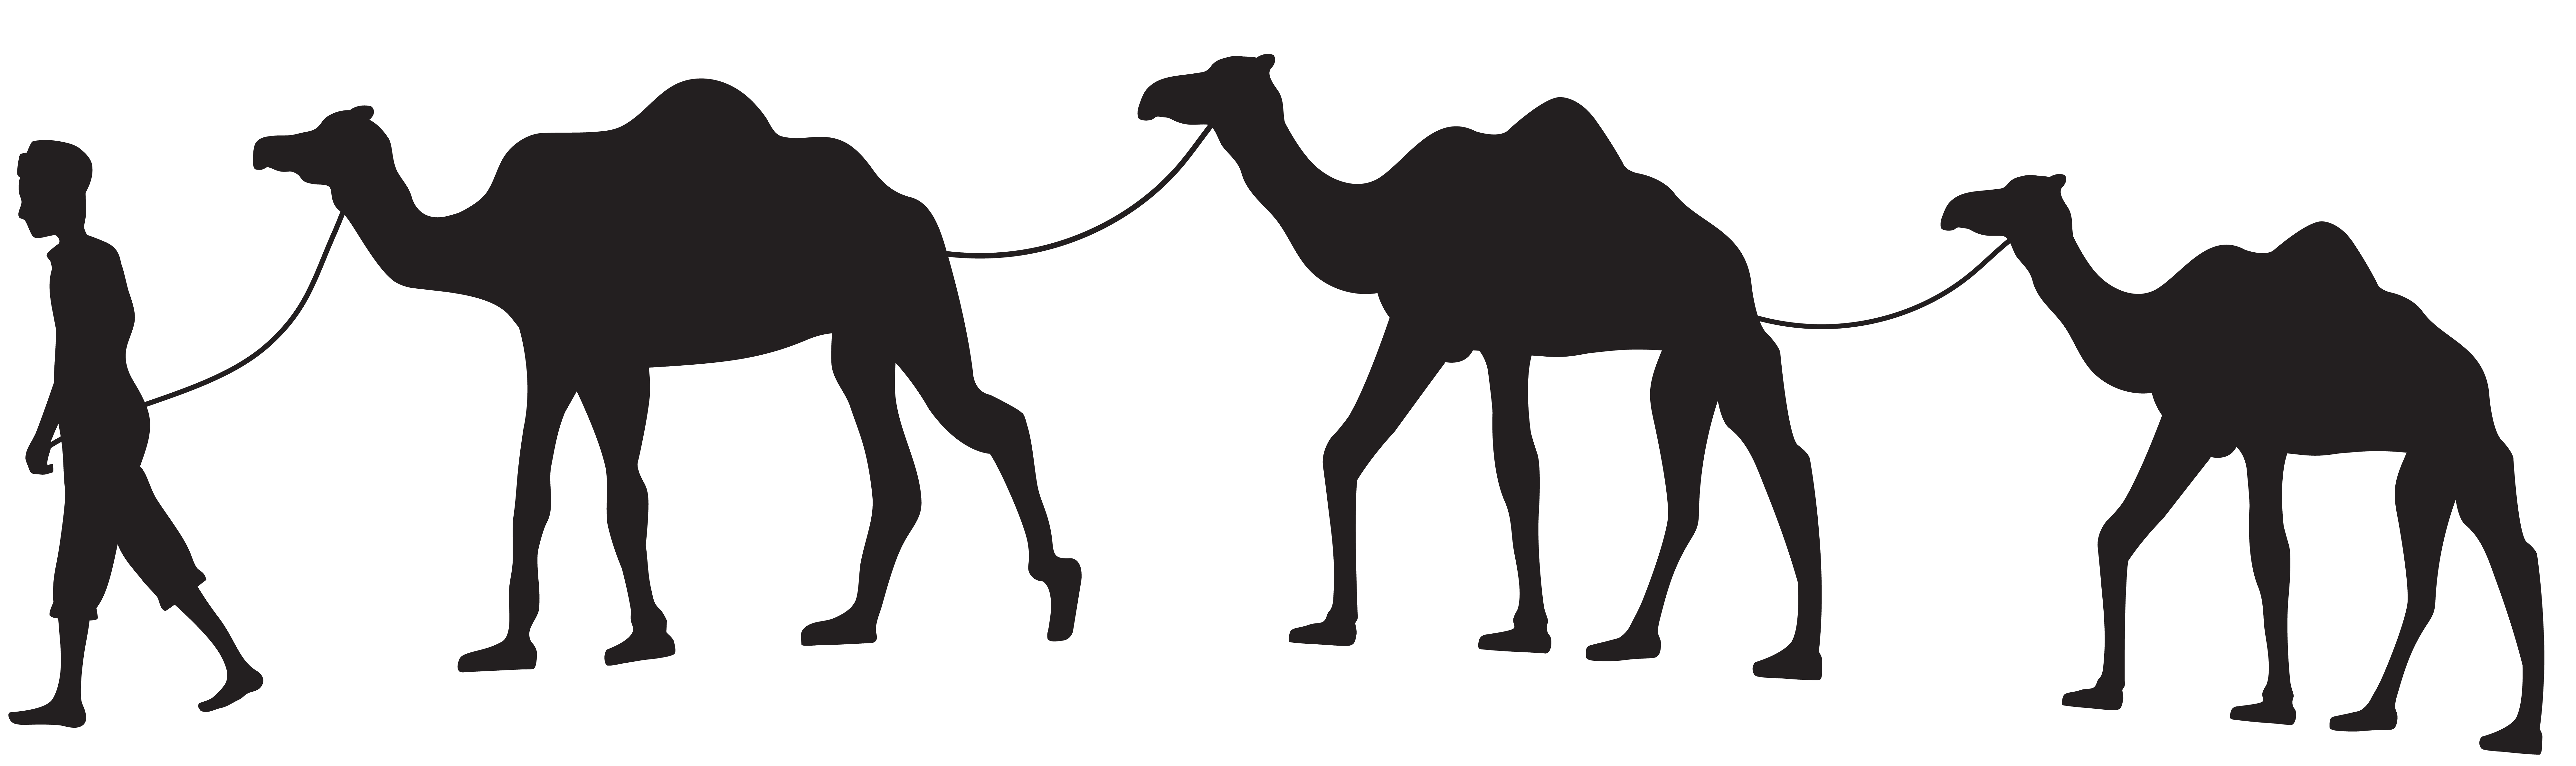 camel caravan silhouette png clip art gallery yopriceville high rh pinterest com camel clipart images camel clipart free download